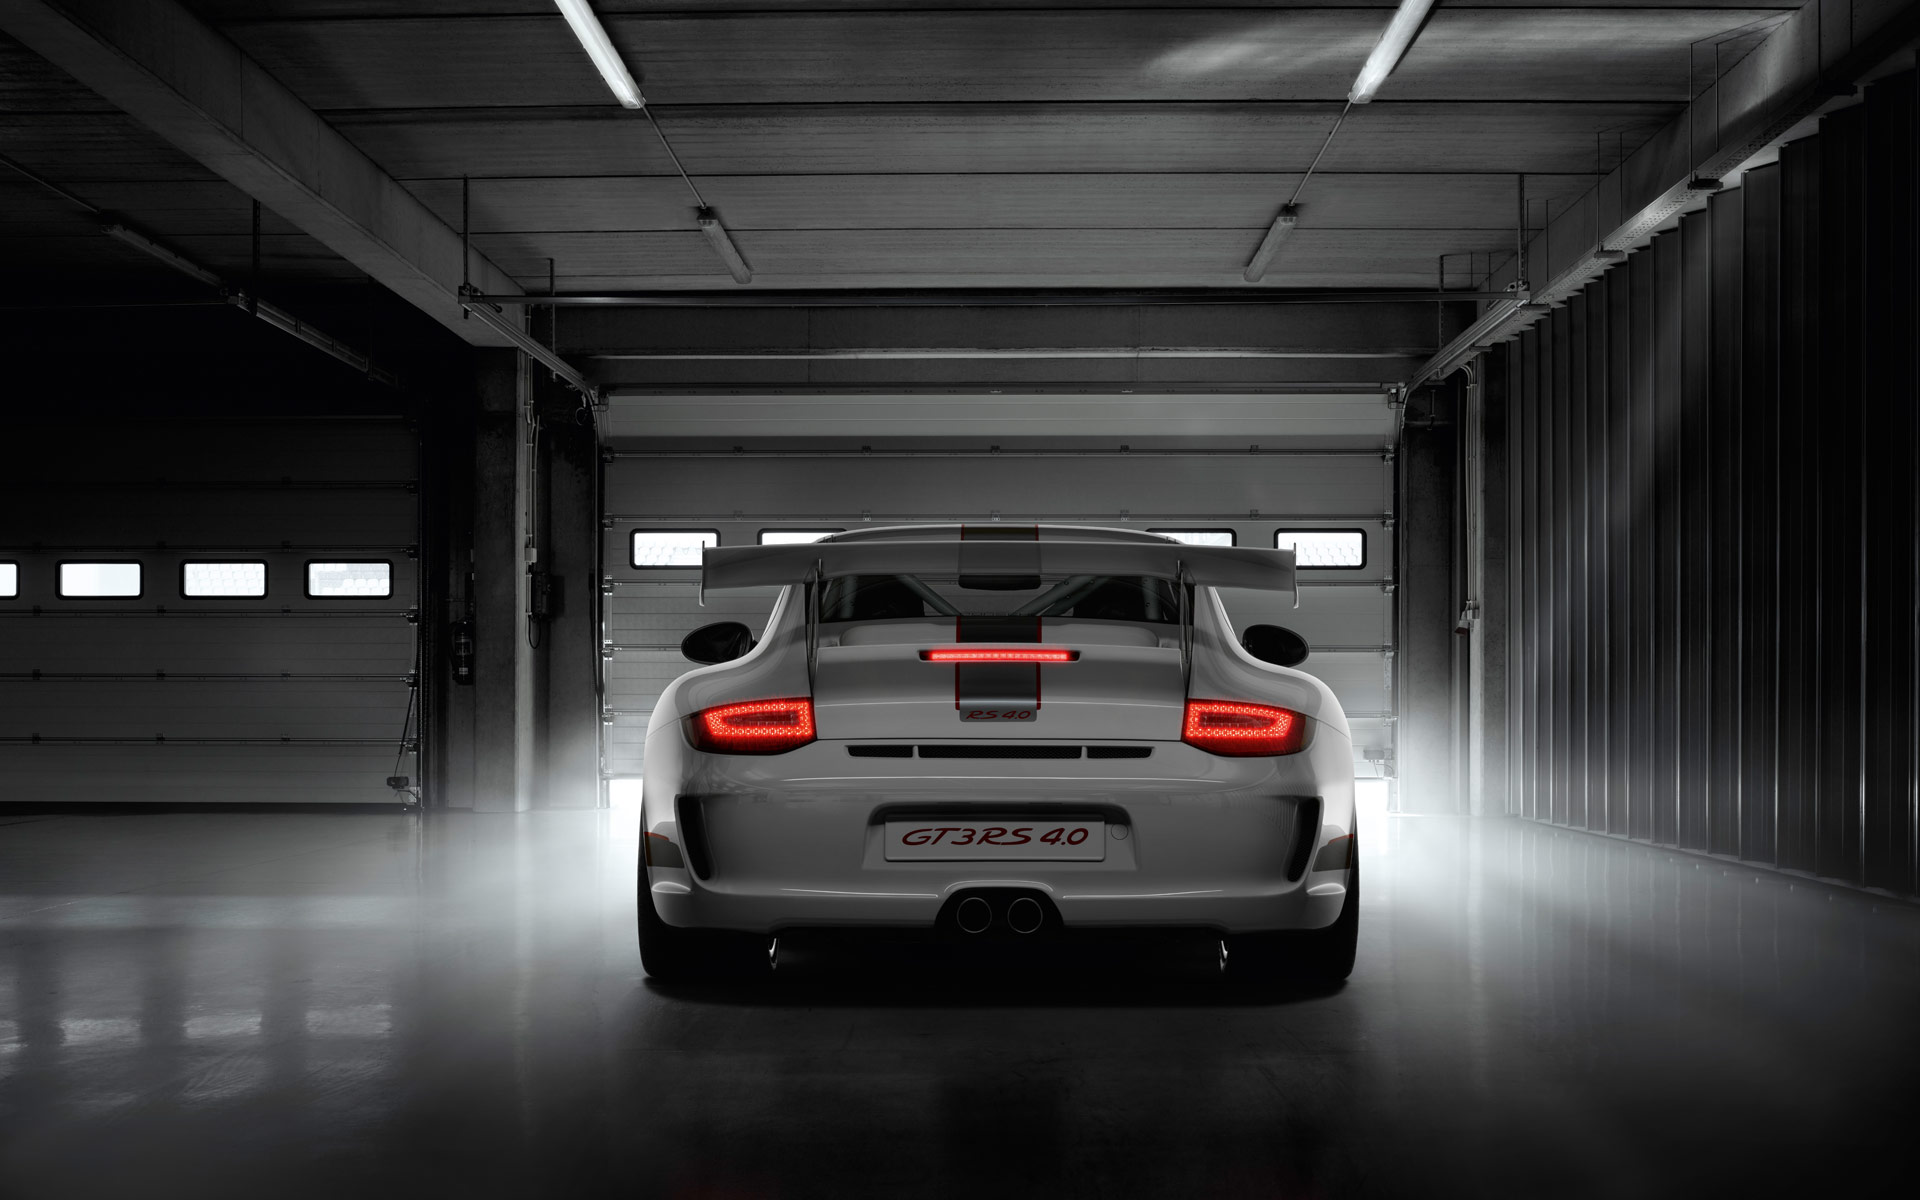 2013 Porsche 911 GT3 RS 4.0 Images. Photo: Porsche-911-GT3-